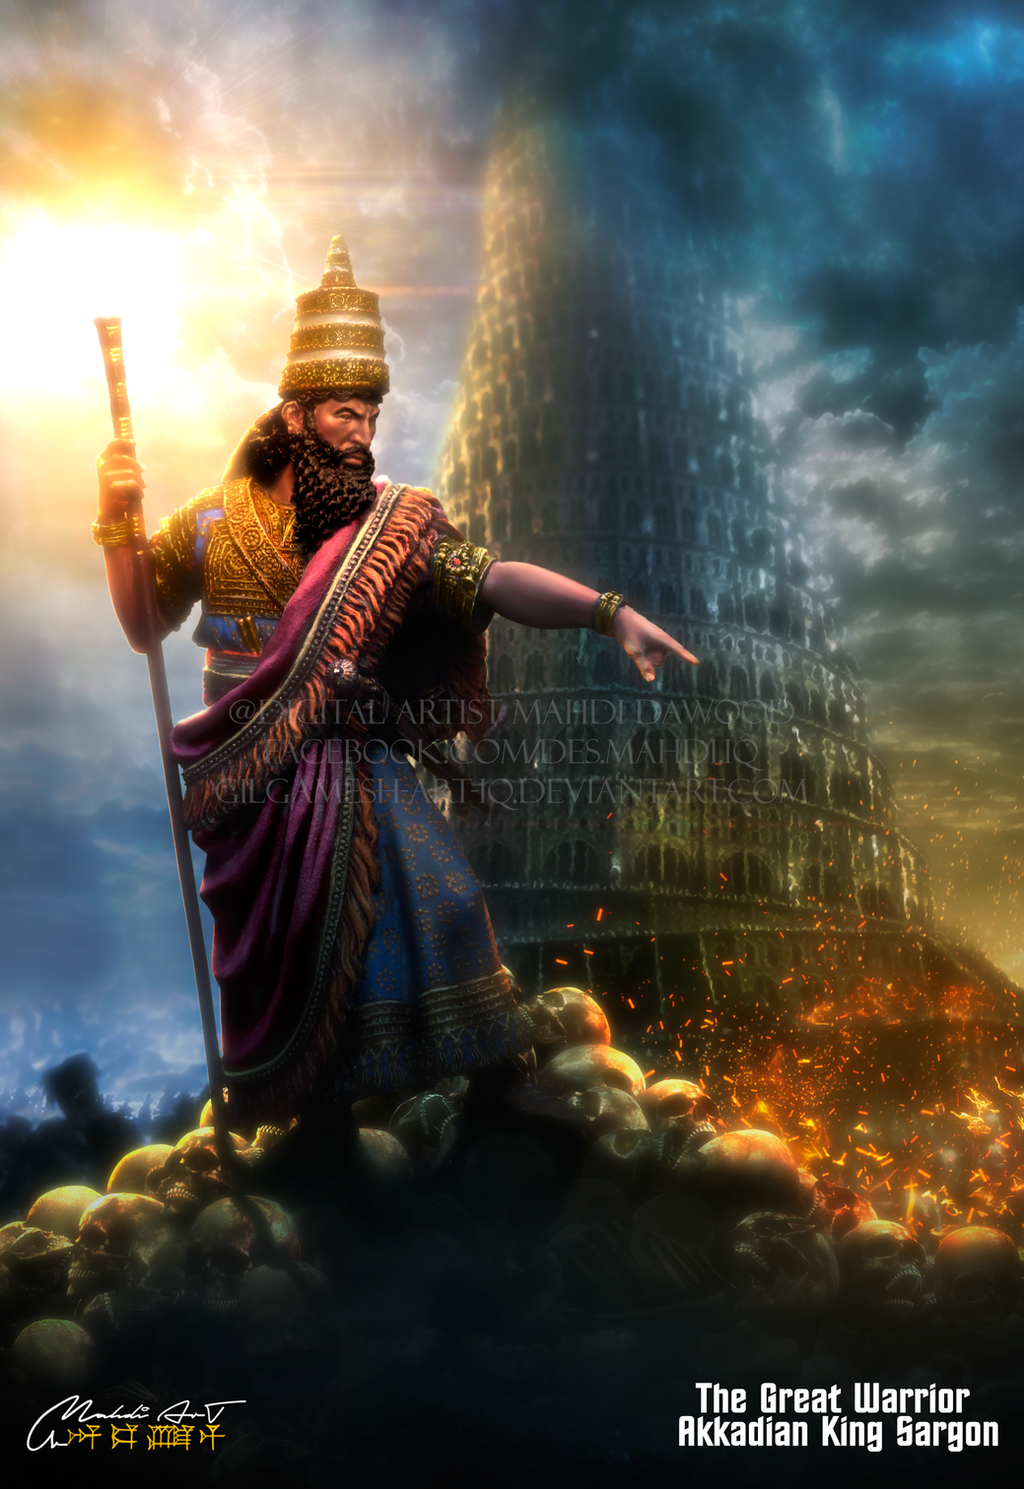 a good leader odysseus and gilgamesh What made gilgamesh an epic hero written by susie zappia related articles 1 what are the good & evil forces in the epic of gilgamesh.